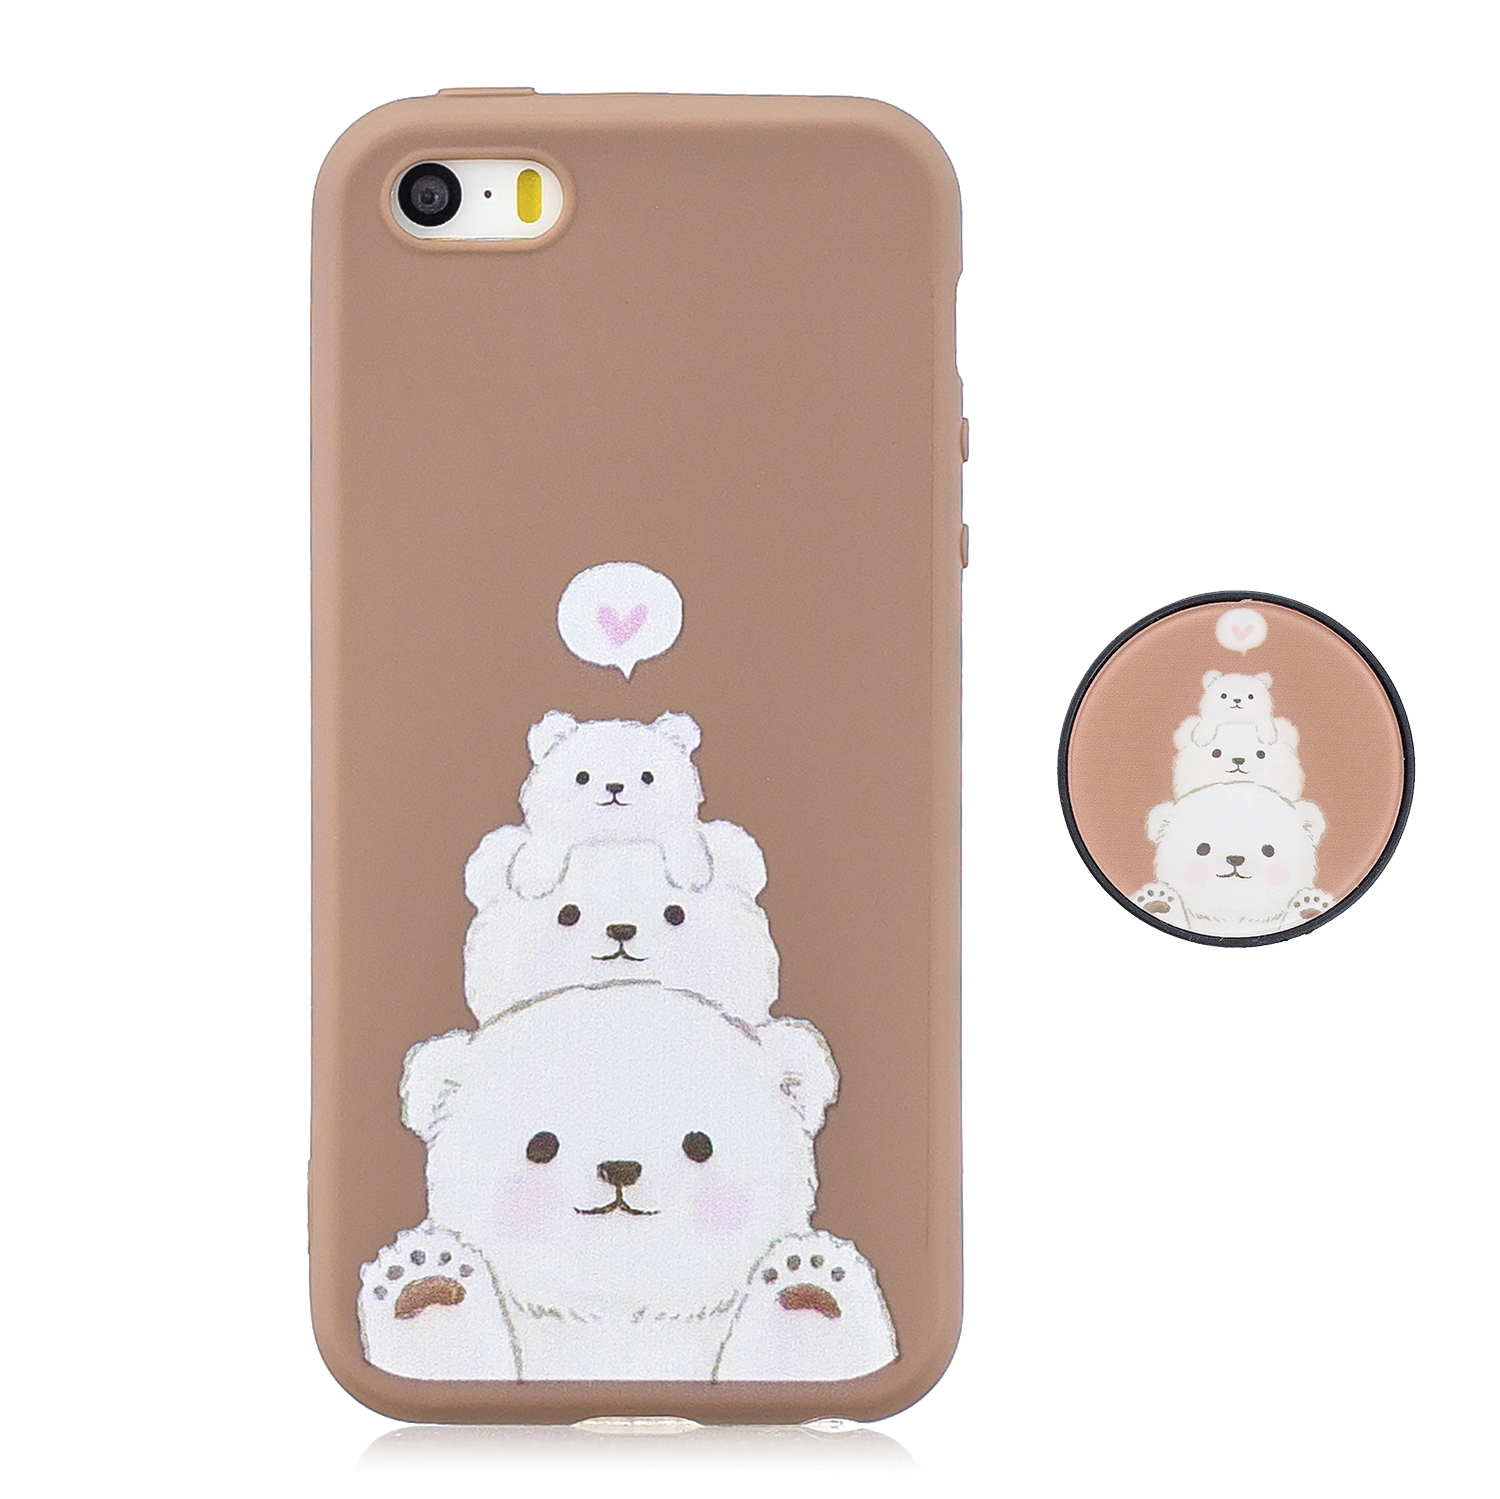 For iPhone 5 5S SE Phone Cases TPU Full Cover Cute Cartoon Painted Case Girls Mobile Phone Cover 3